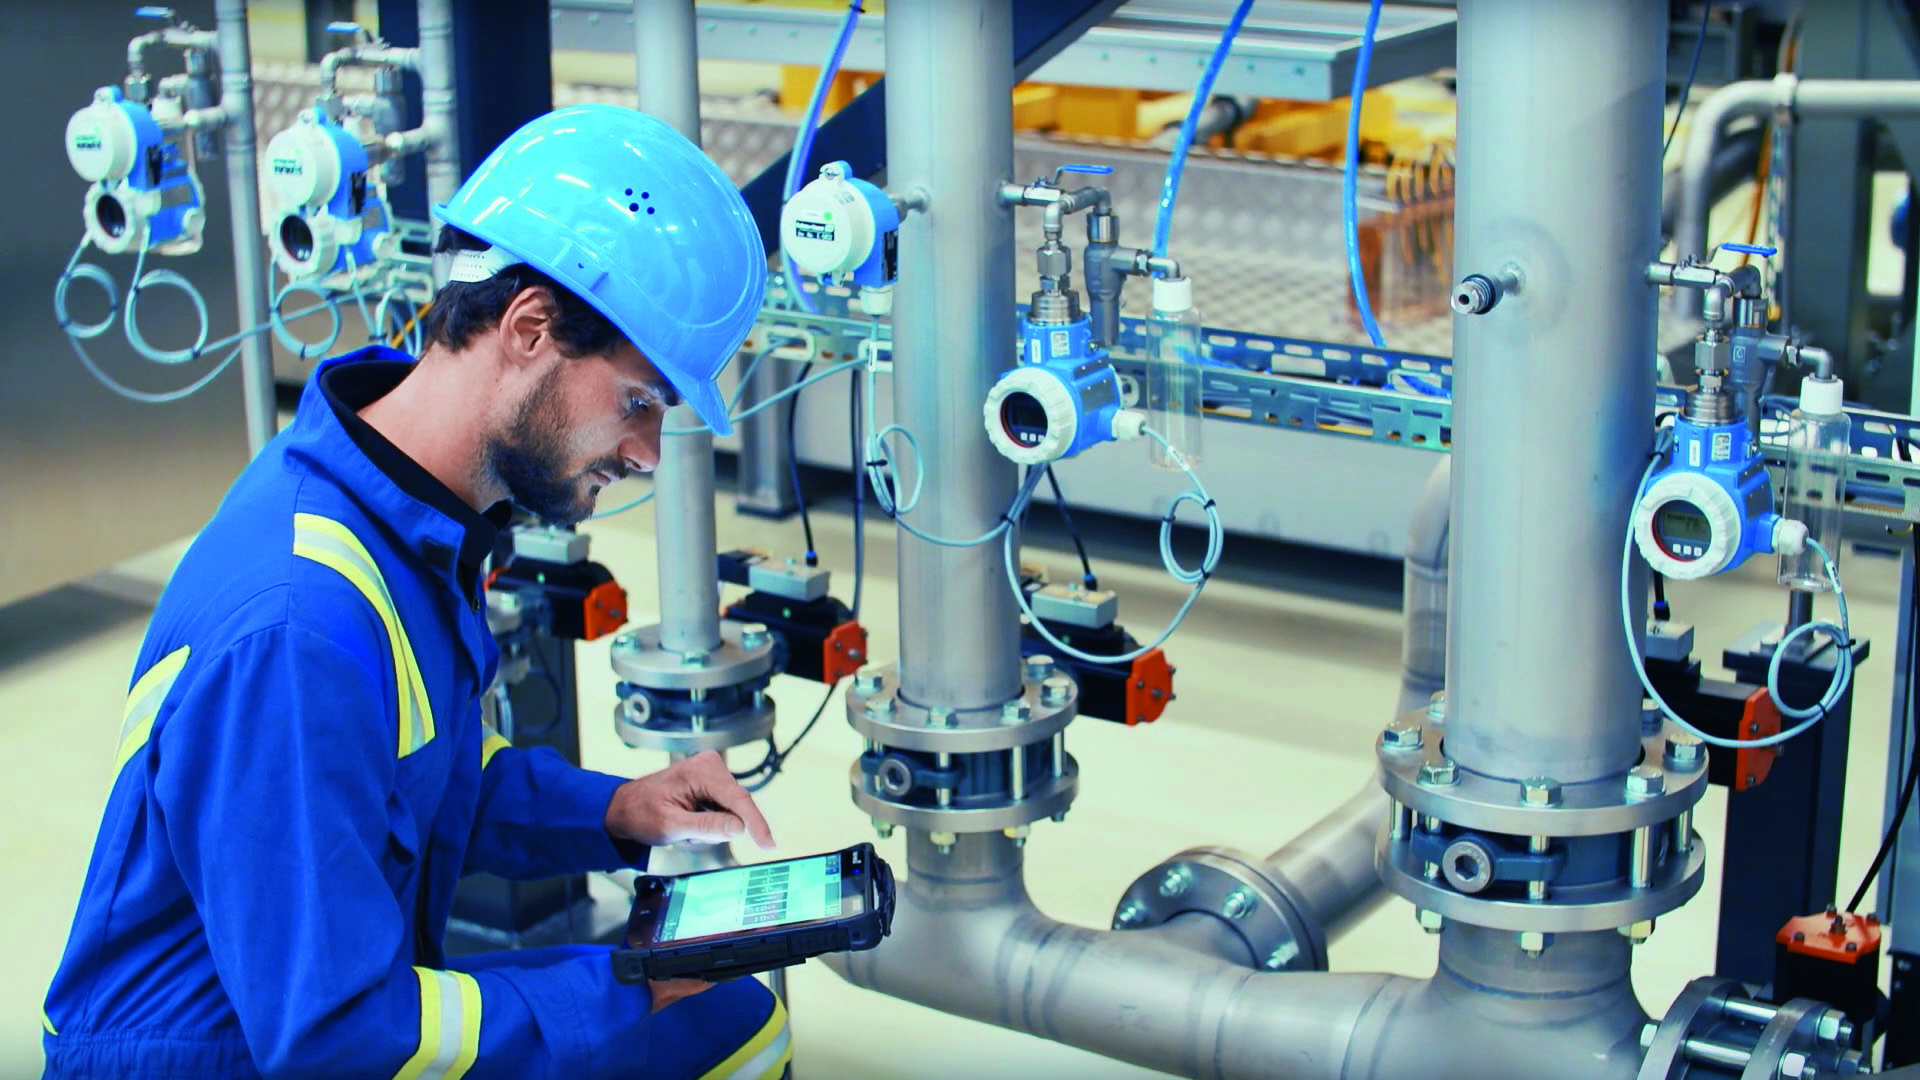 Endress + Hauser is one of the first manufacturers to equip its field devices with mobile communication modules and to connect existing systems to 5G networks via newly developed Hart gateways. (Picture: Endress + Hauser)